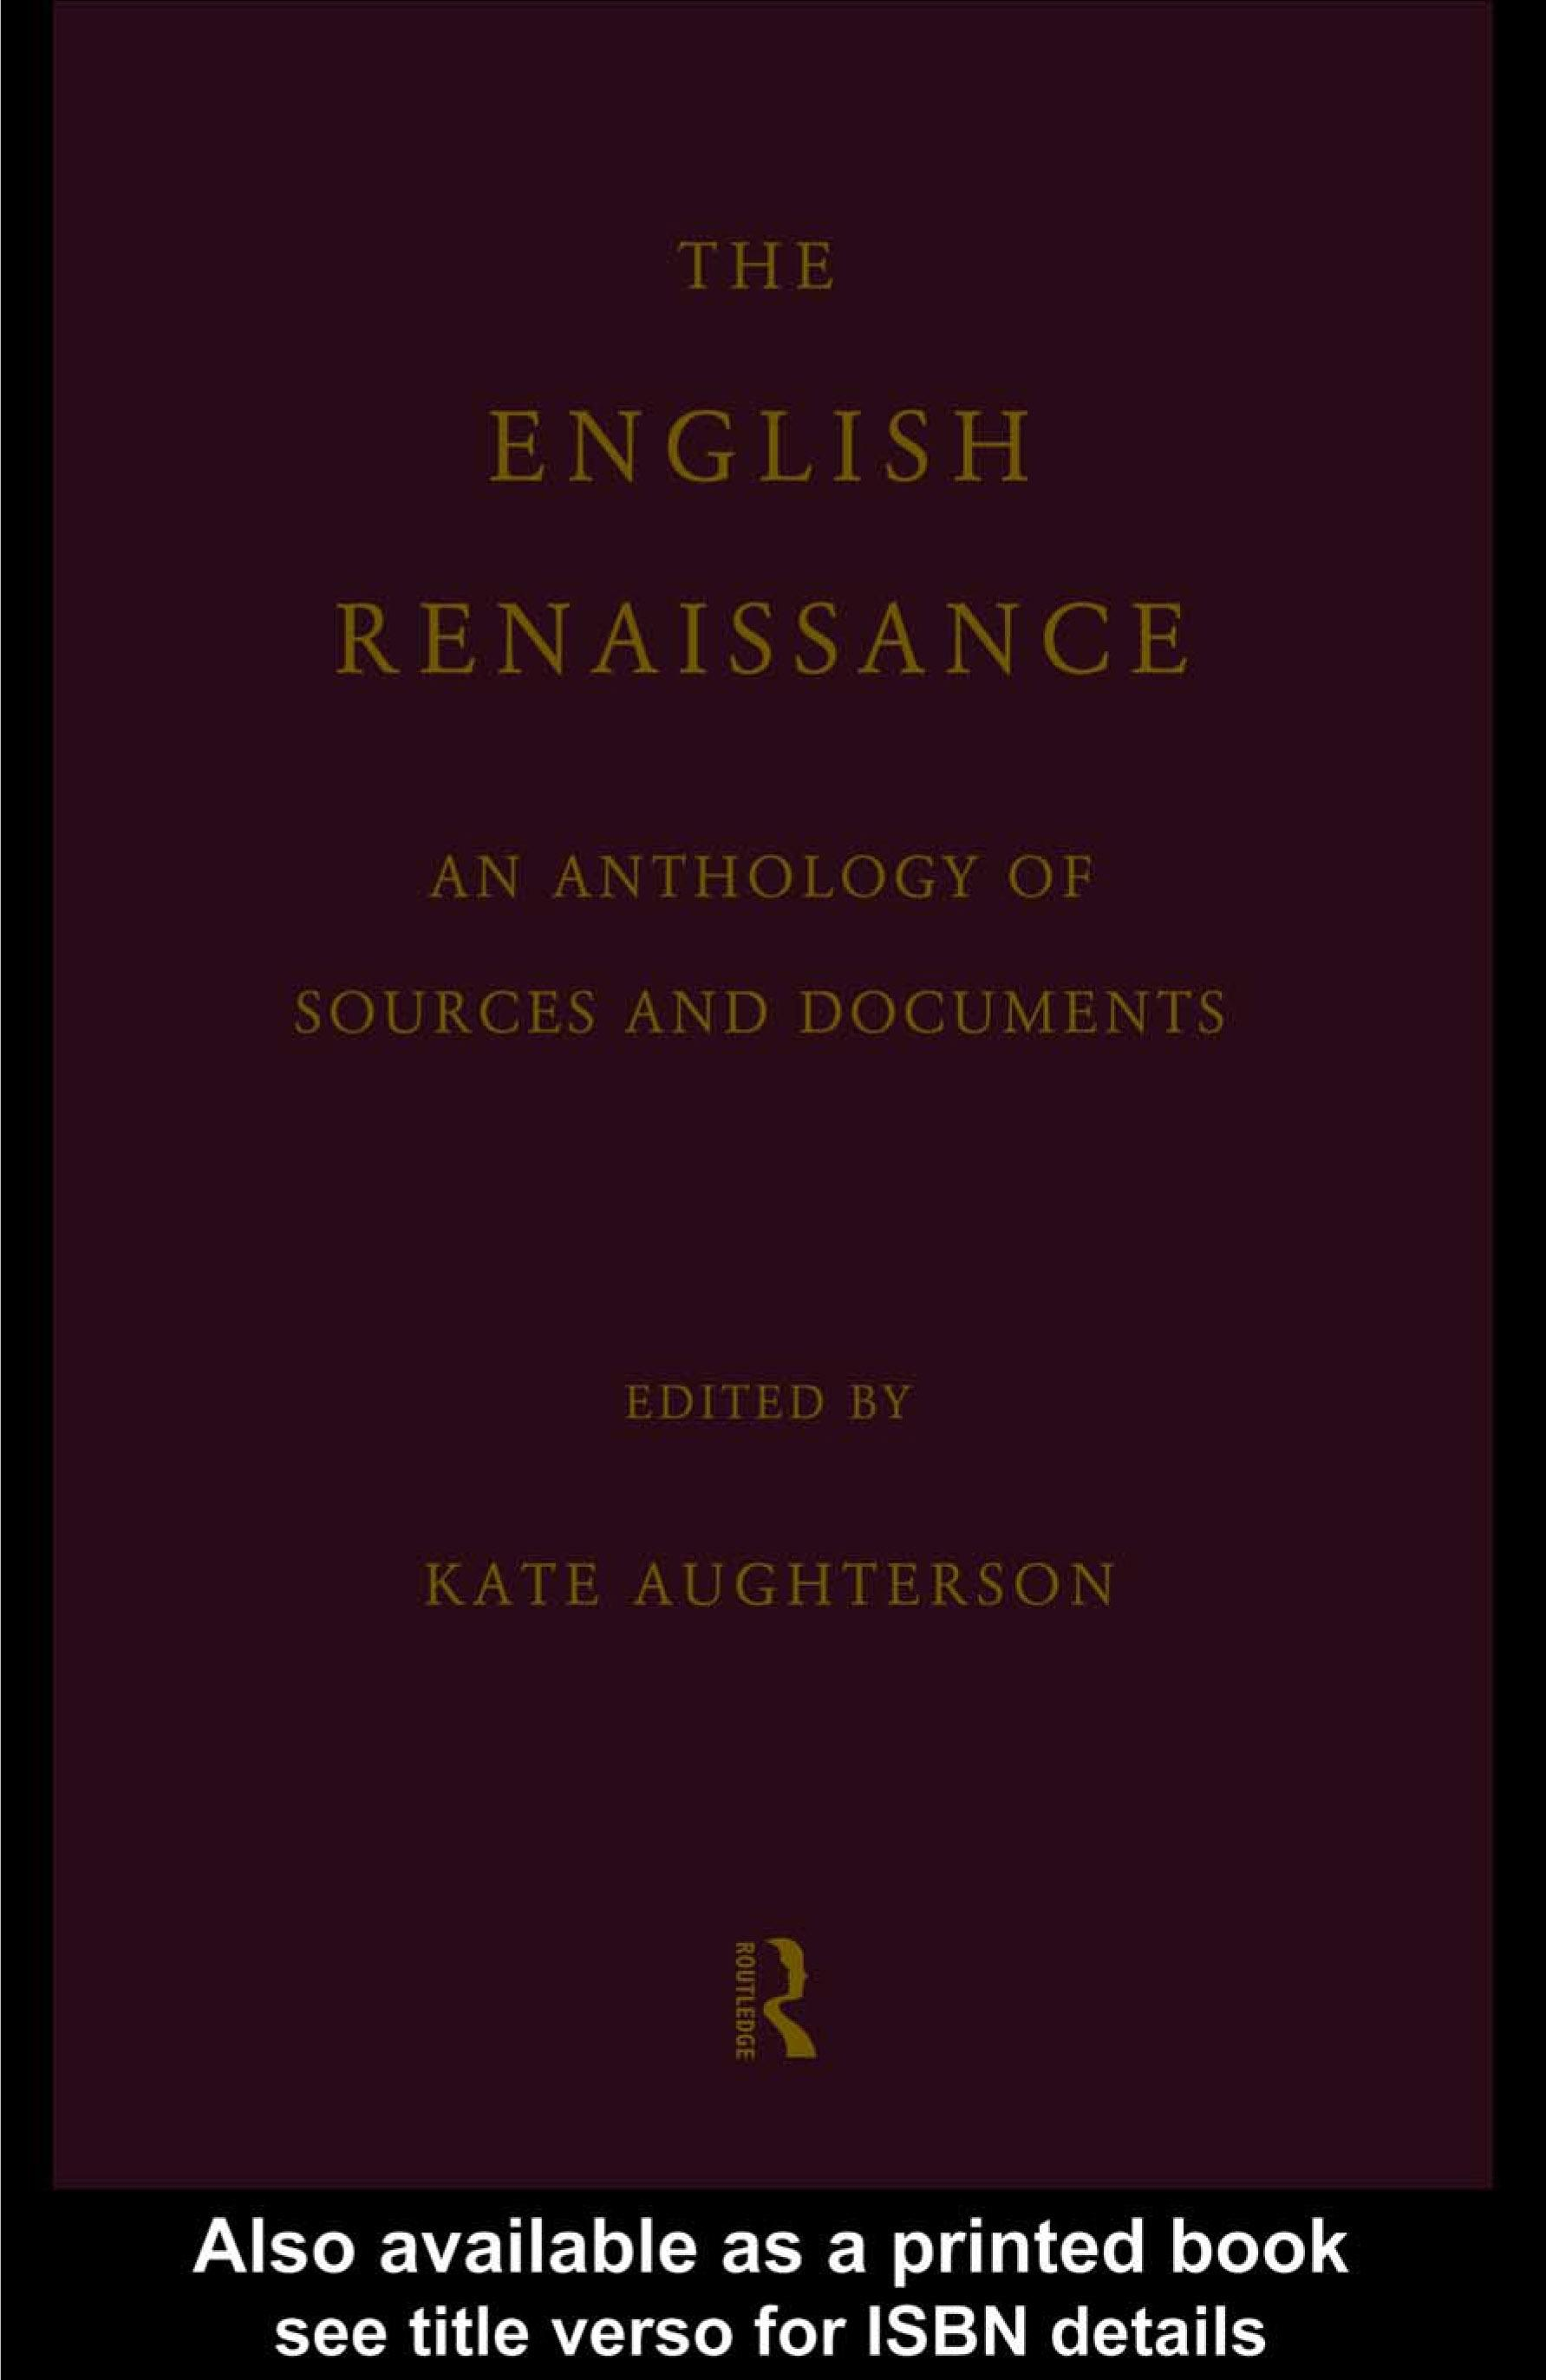 The English Renaissance: An Anthology of Sources and Documents EB9780203027974